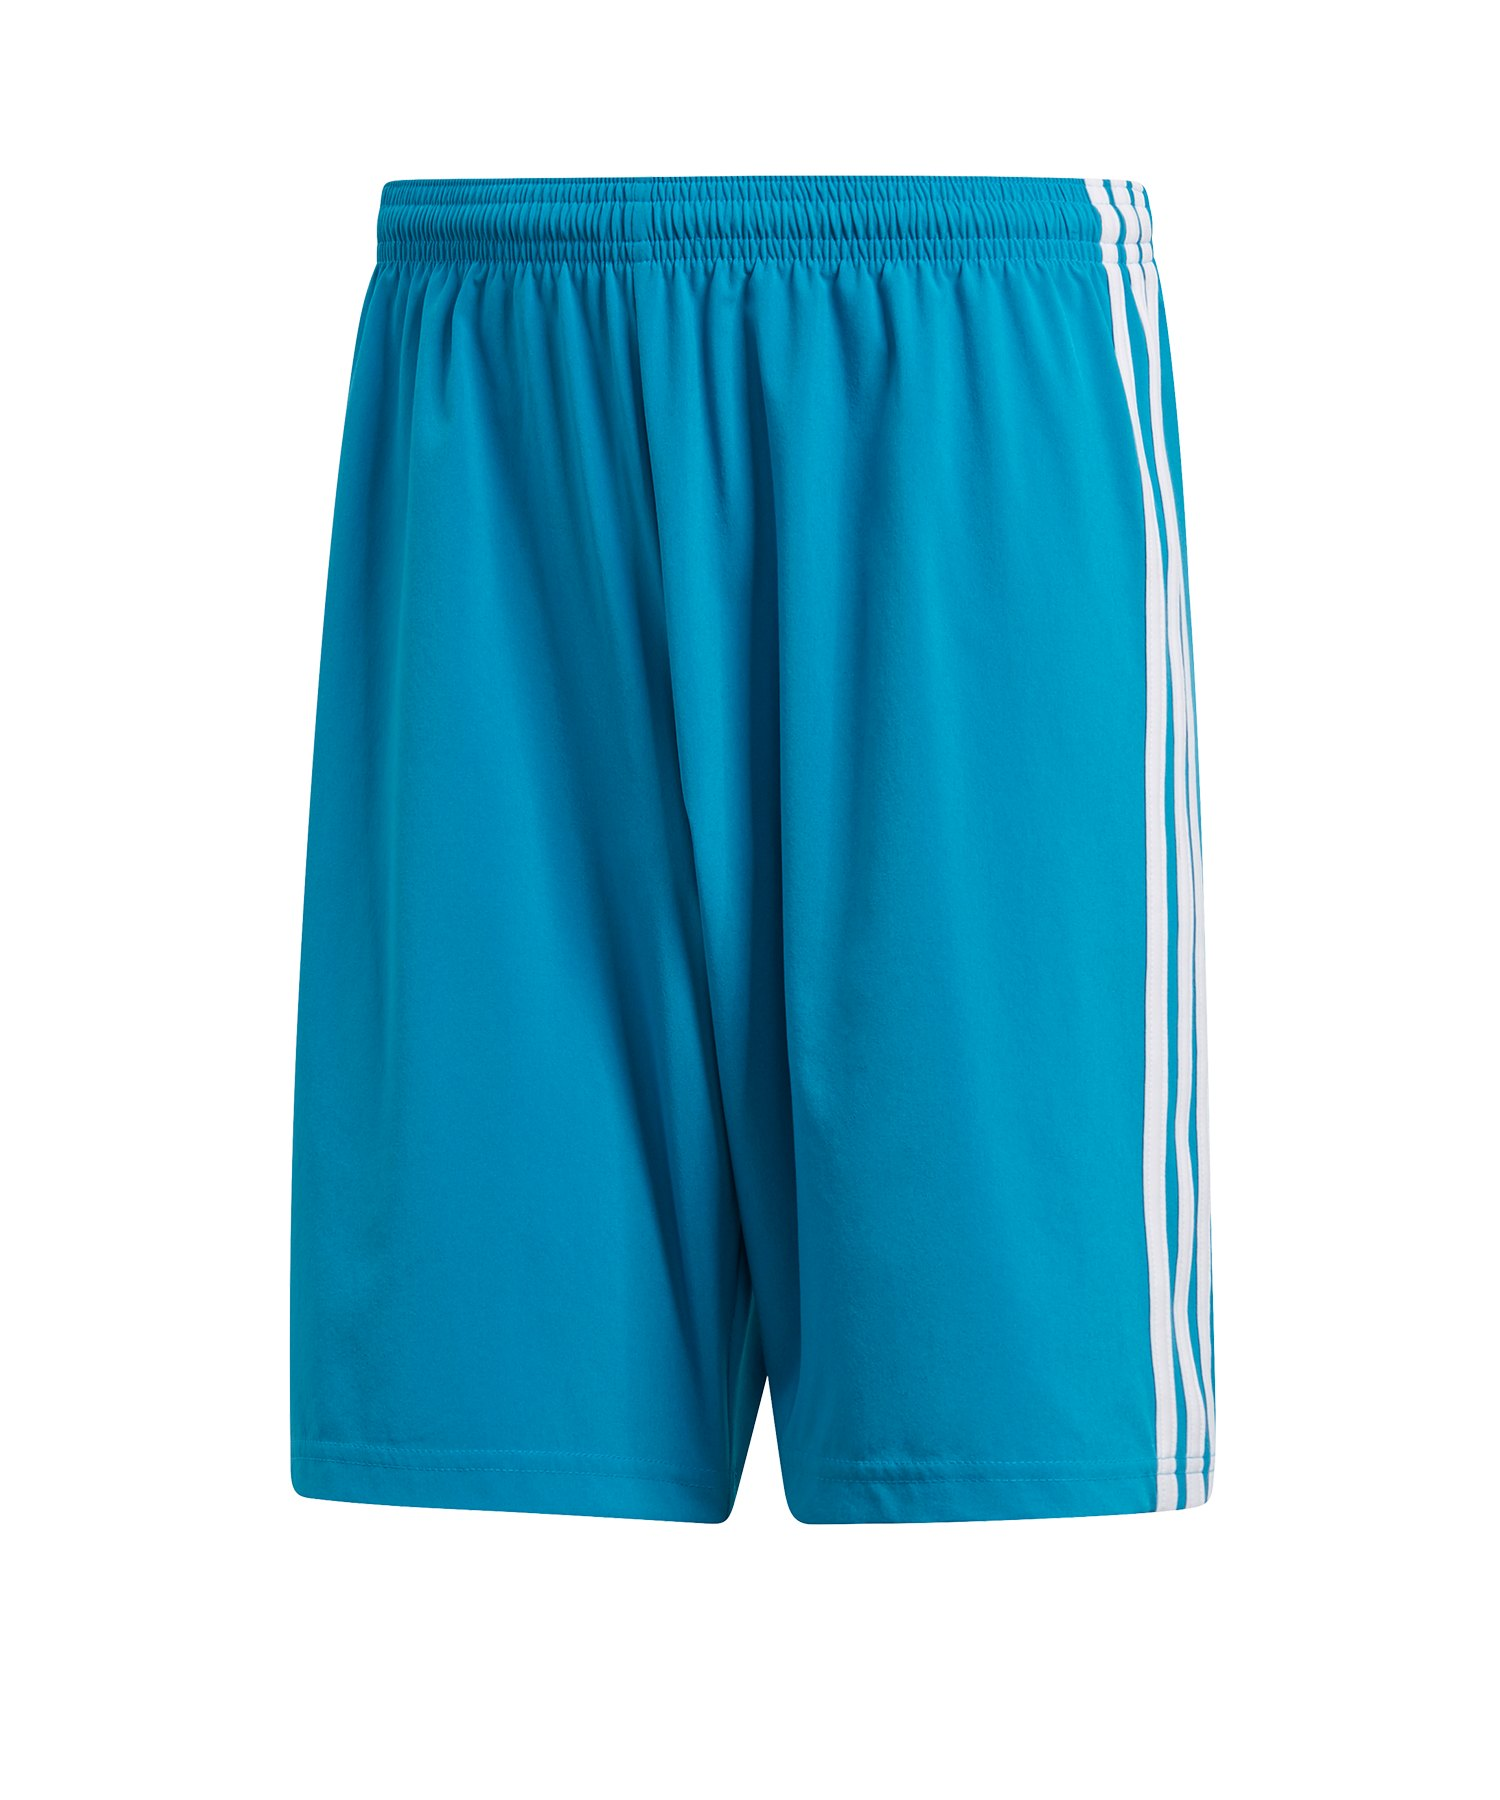 outlet boutique how to buy sells adidas Condivo 18 Short Hose kurz Blau Weiss